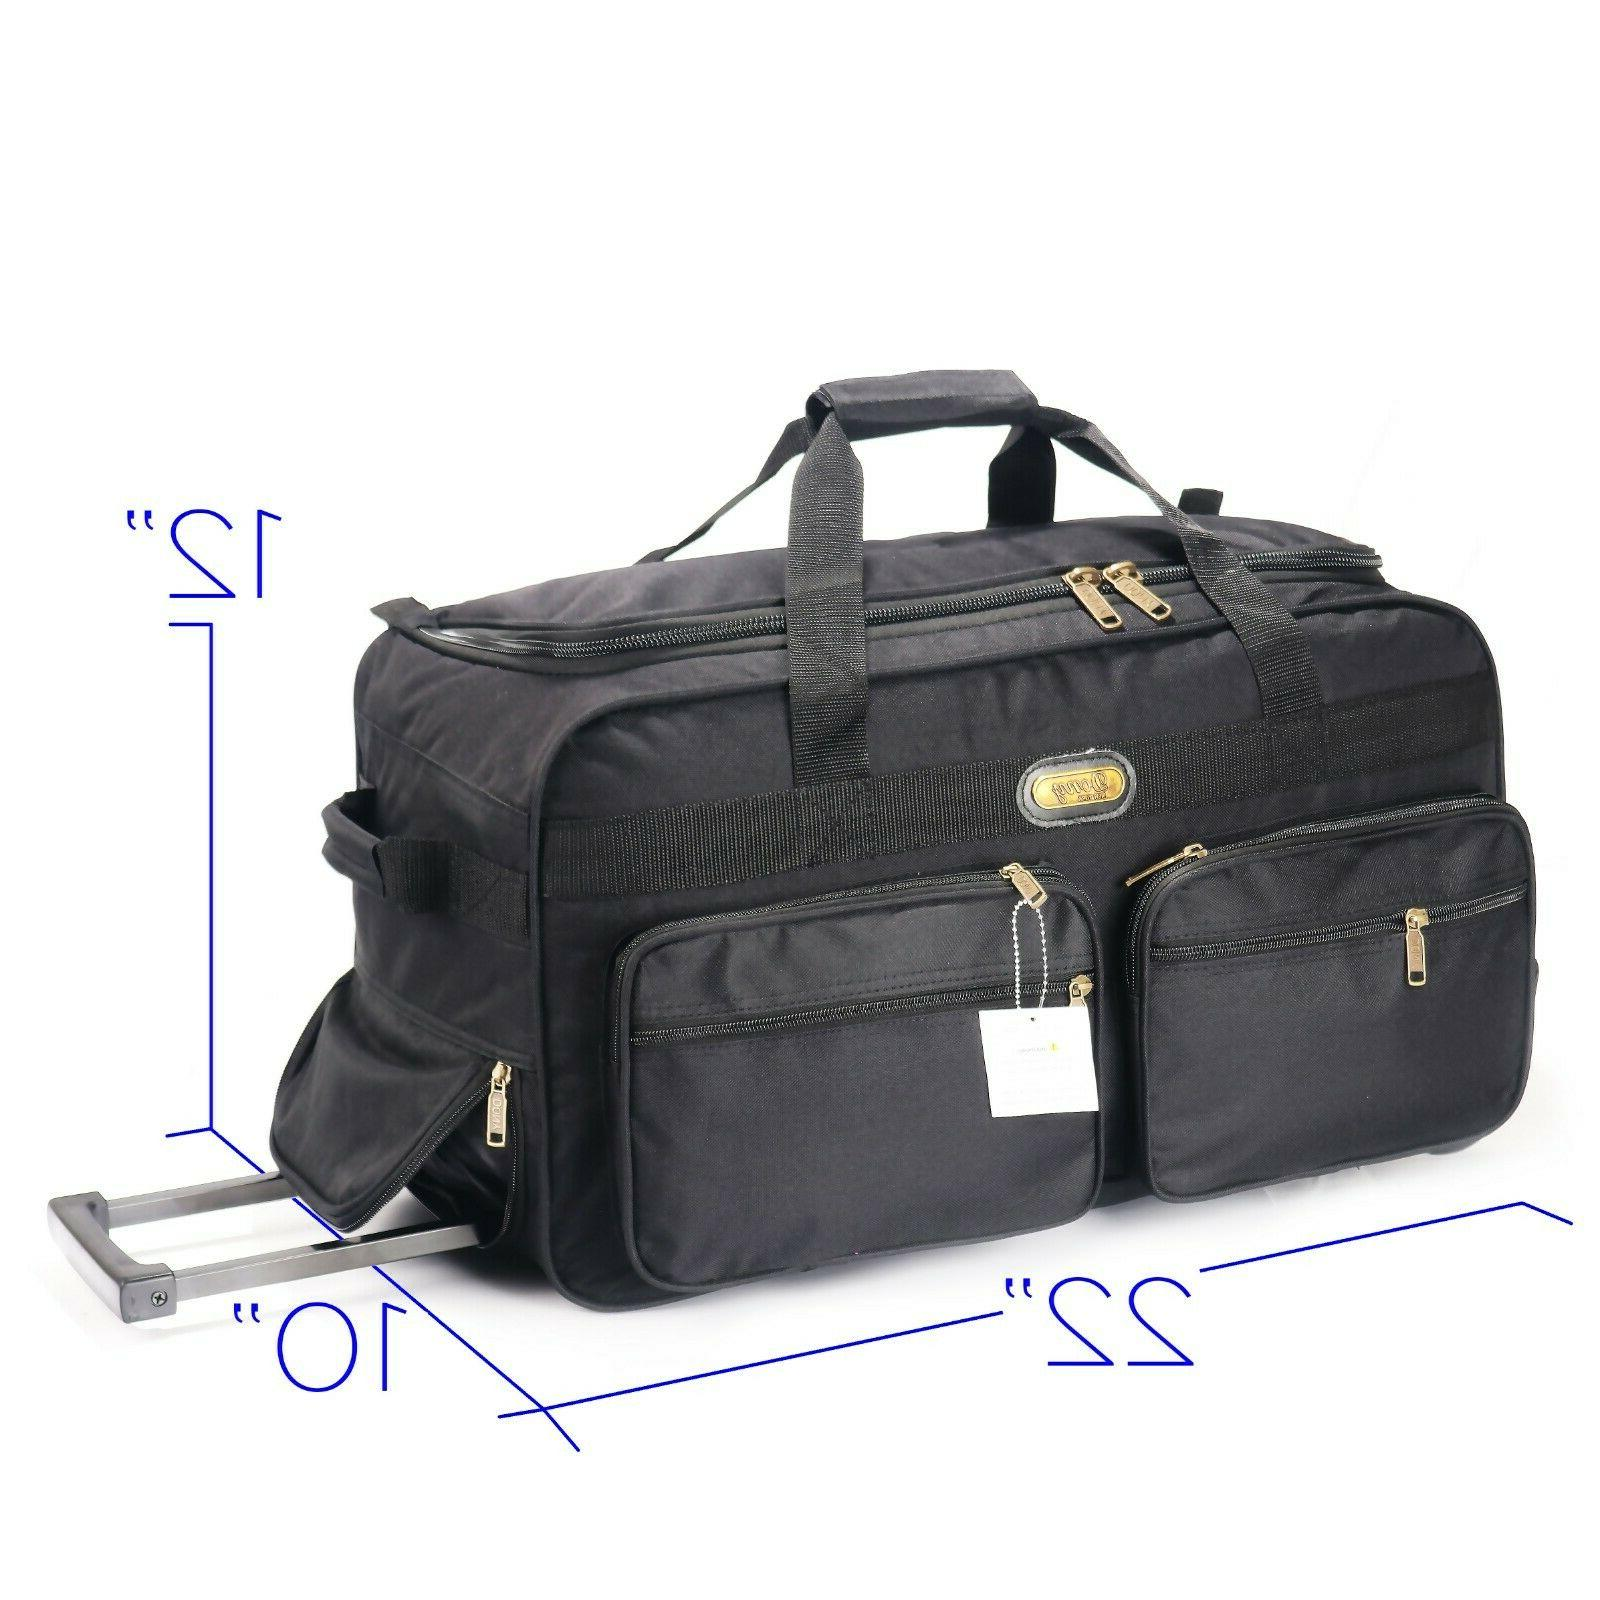 """22"""" Bag Tote Travel Suitcase Luggage"""